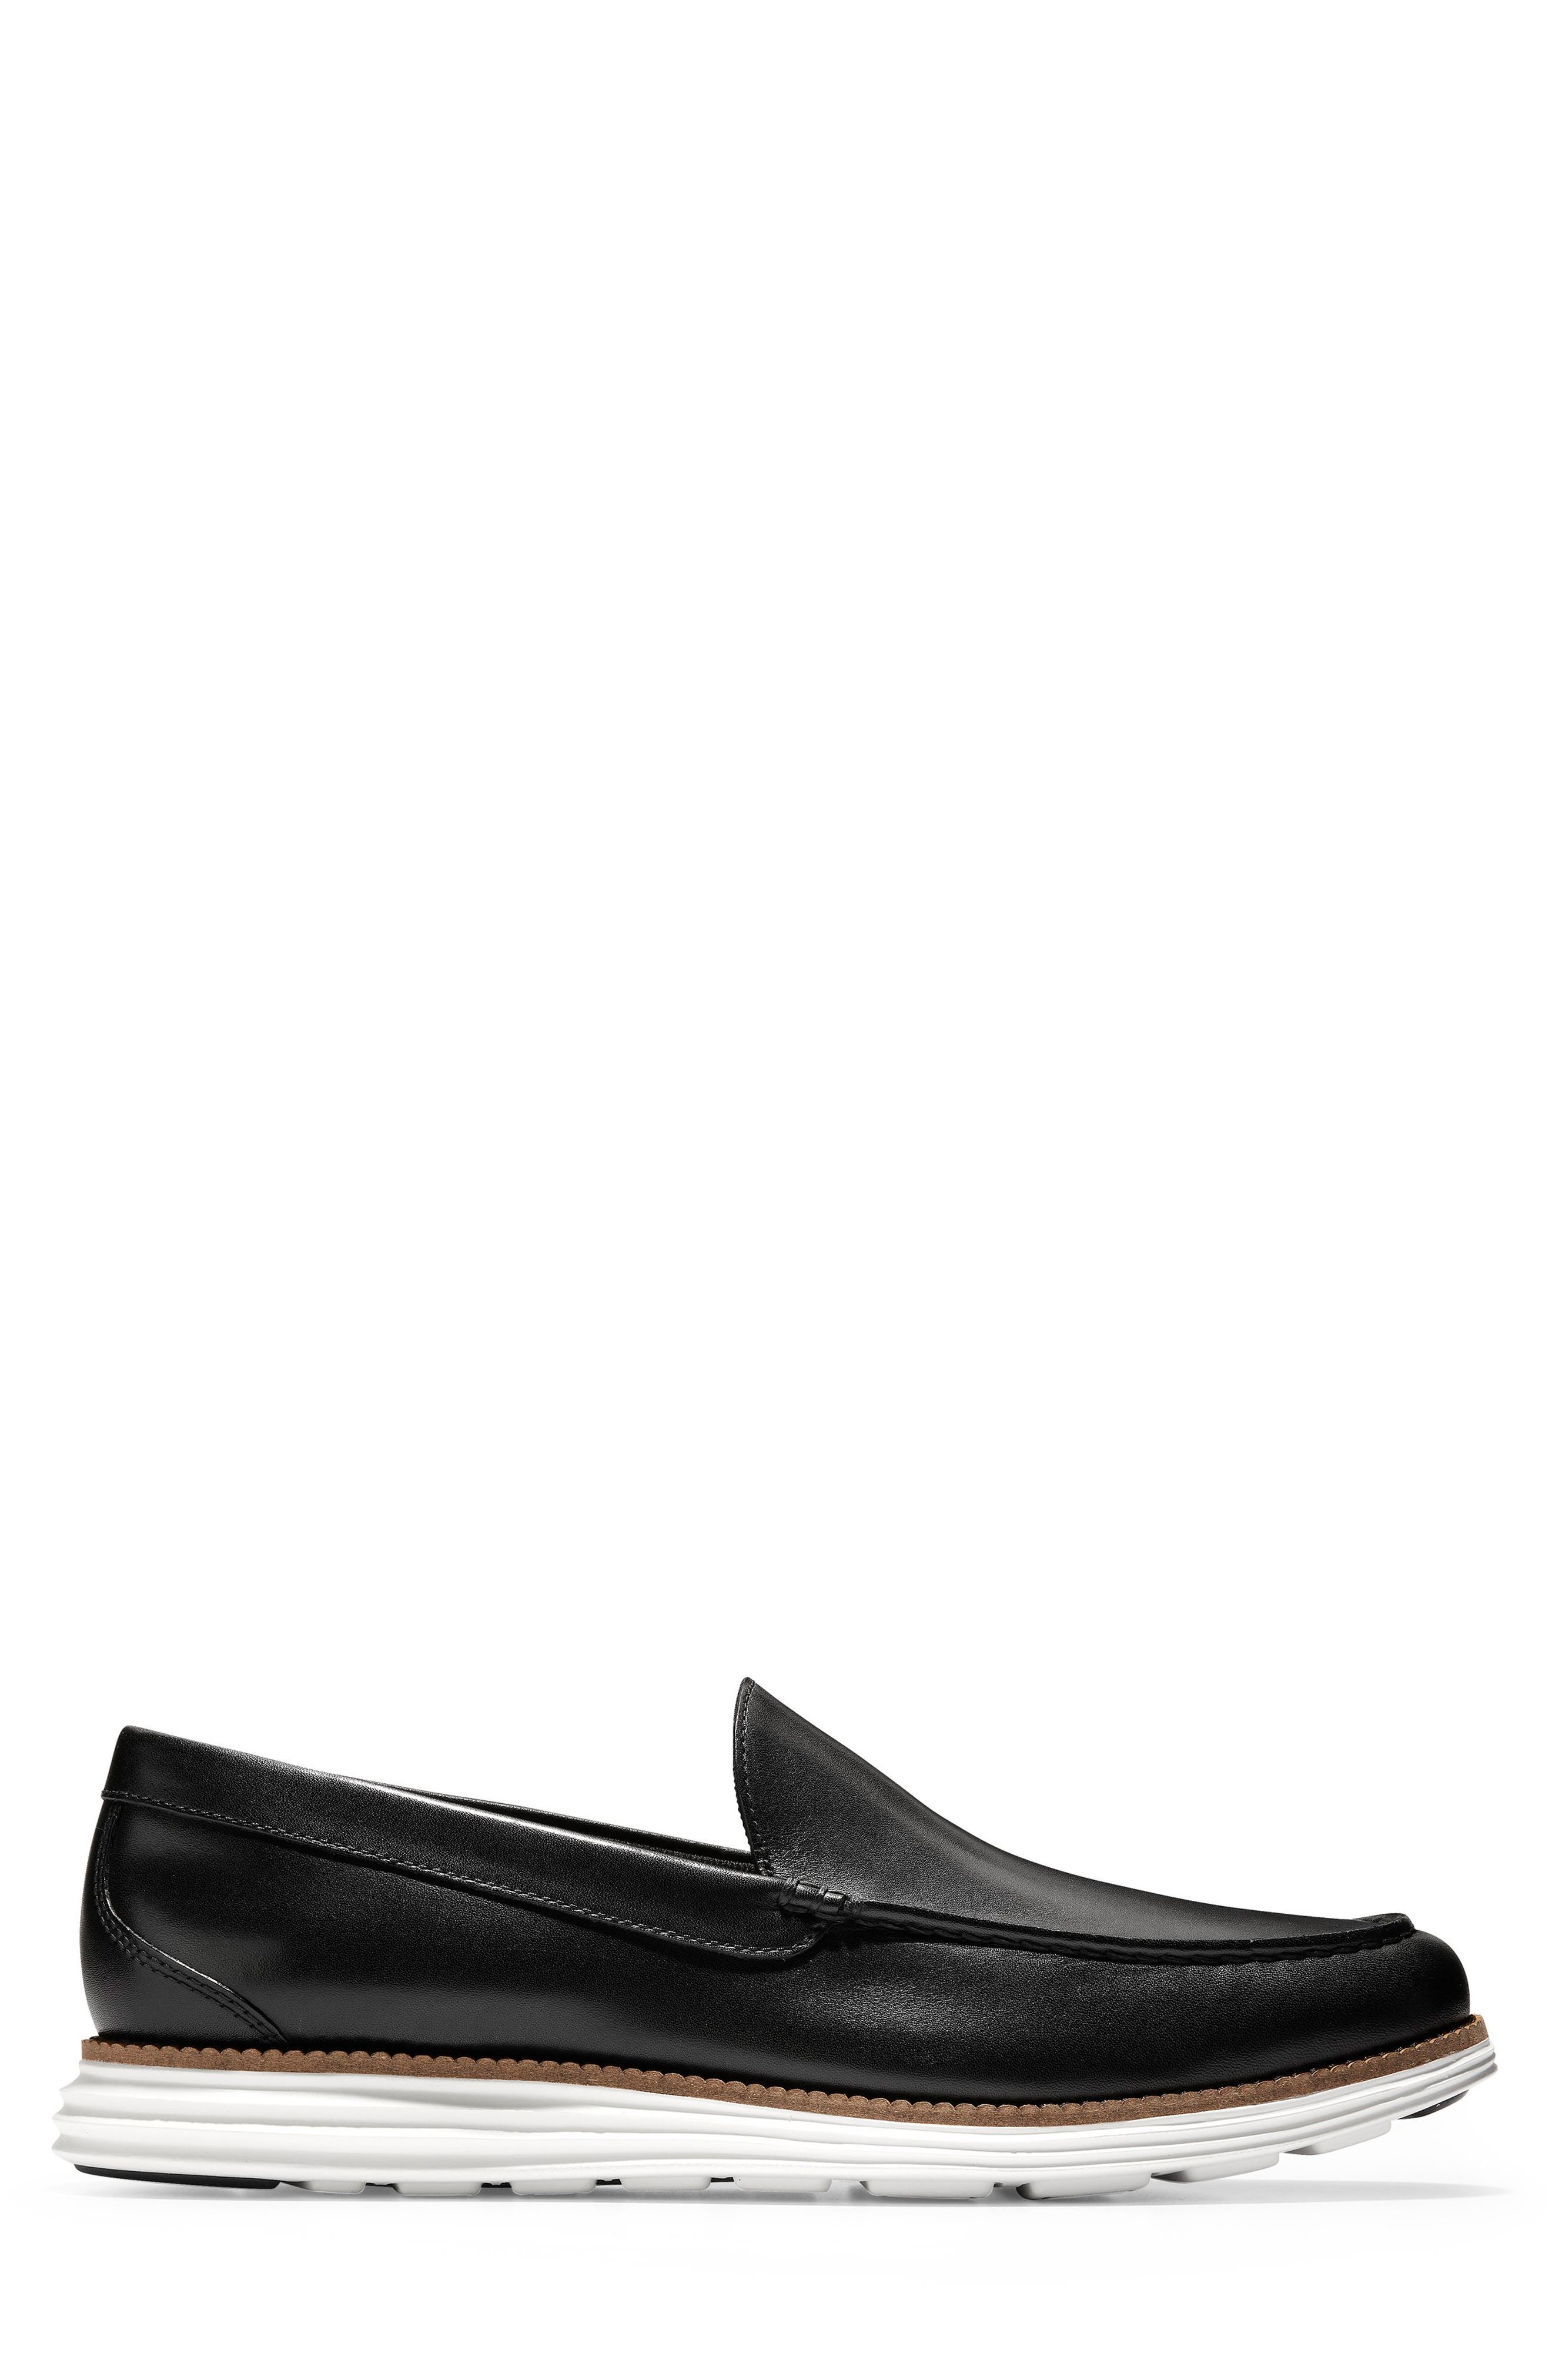 COLE HAAN, Original Grand Loafer, Alternate thumbnail 3, color, BLACK/ OPTIC WHITE LEATHER